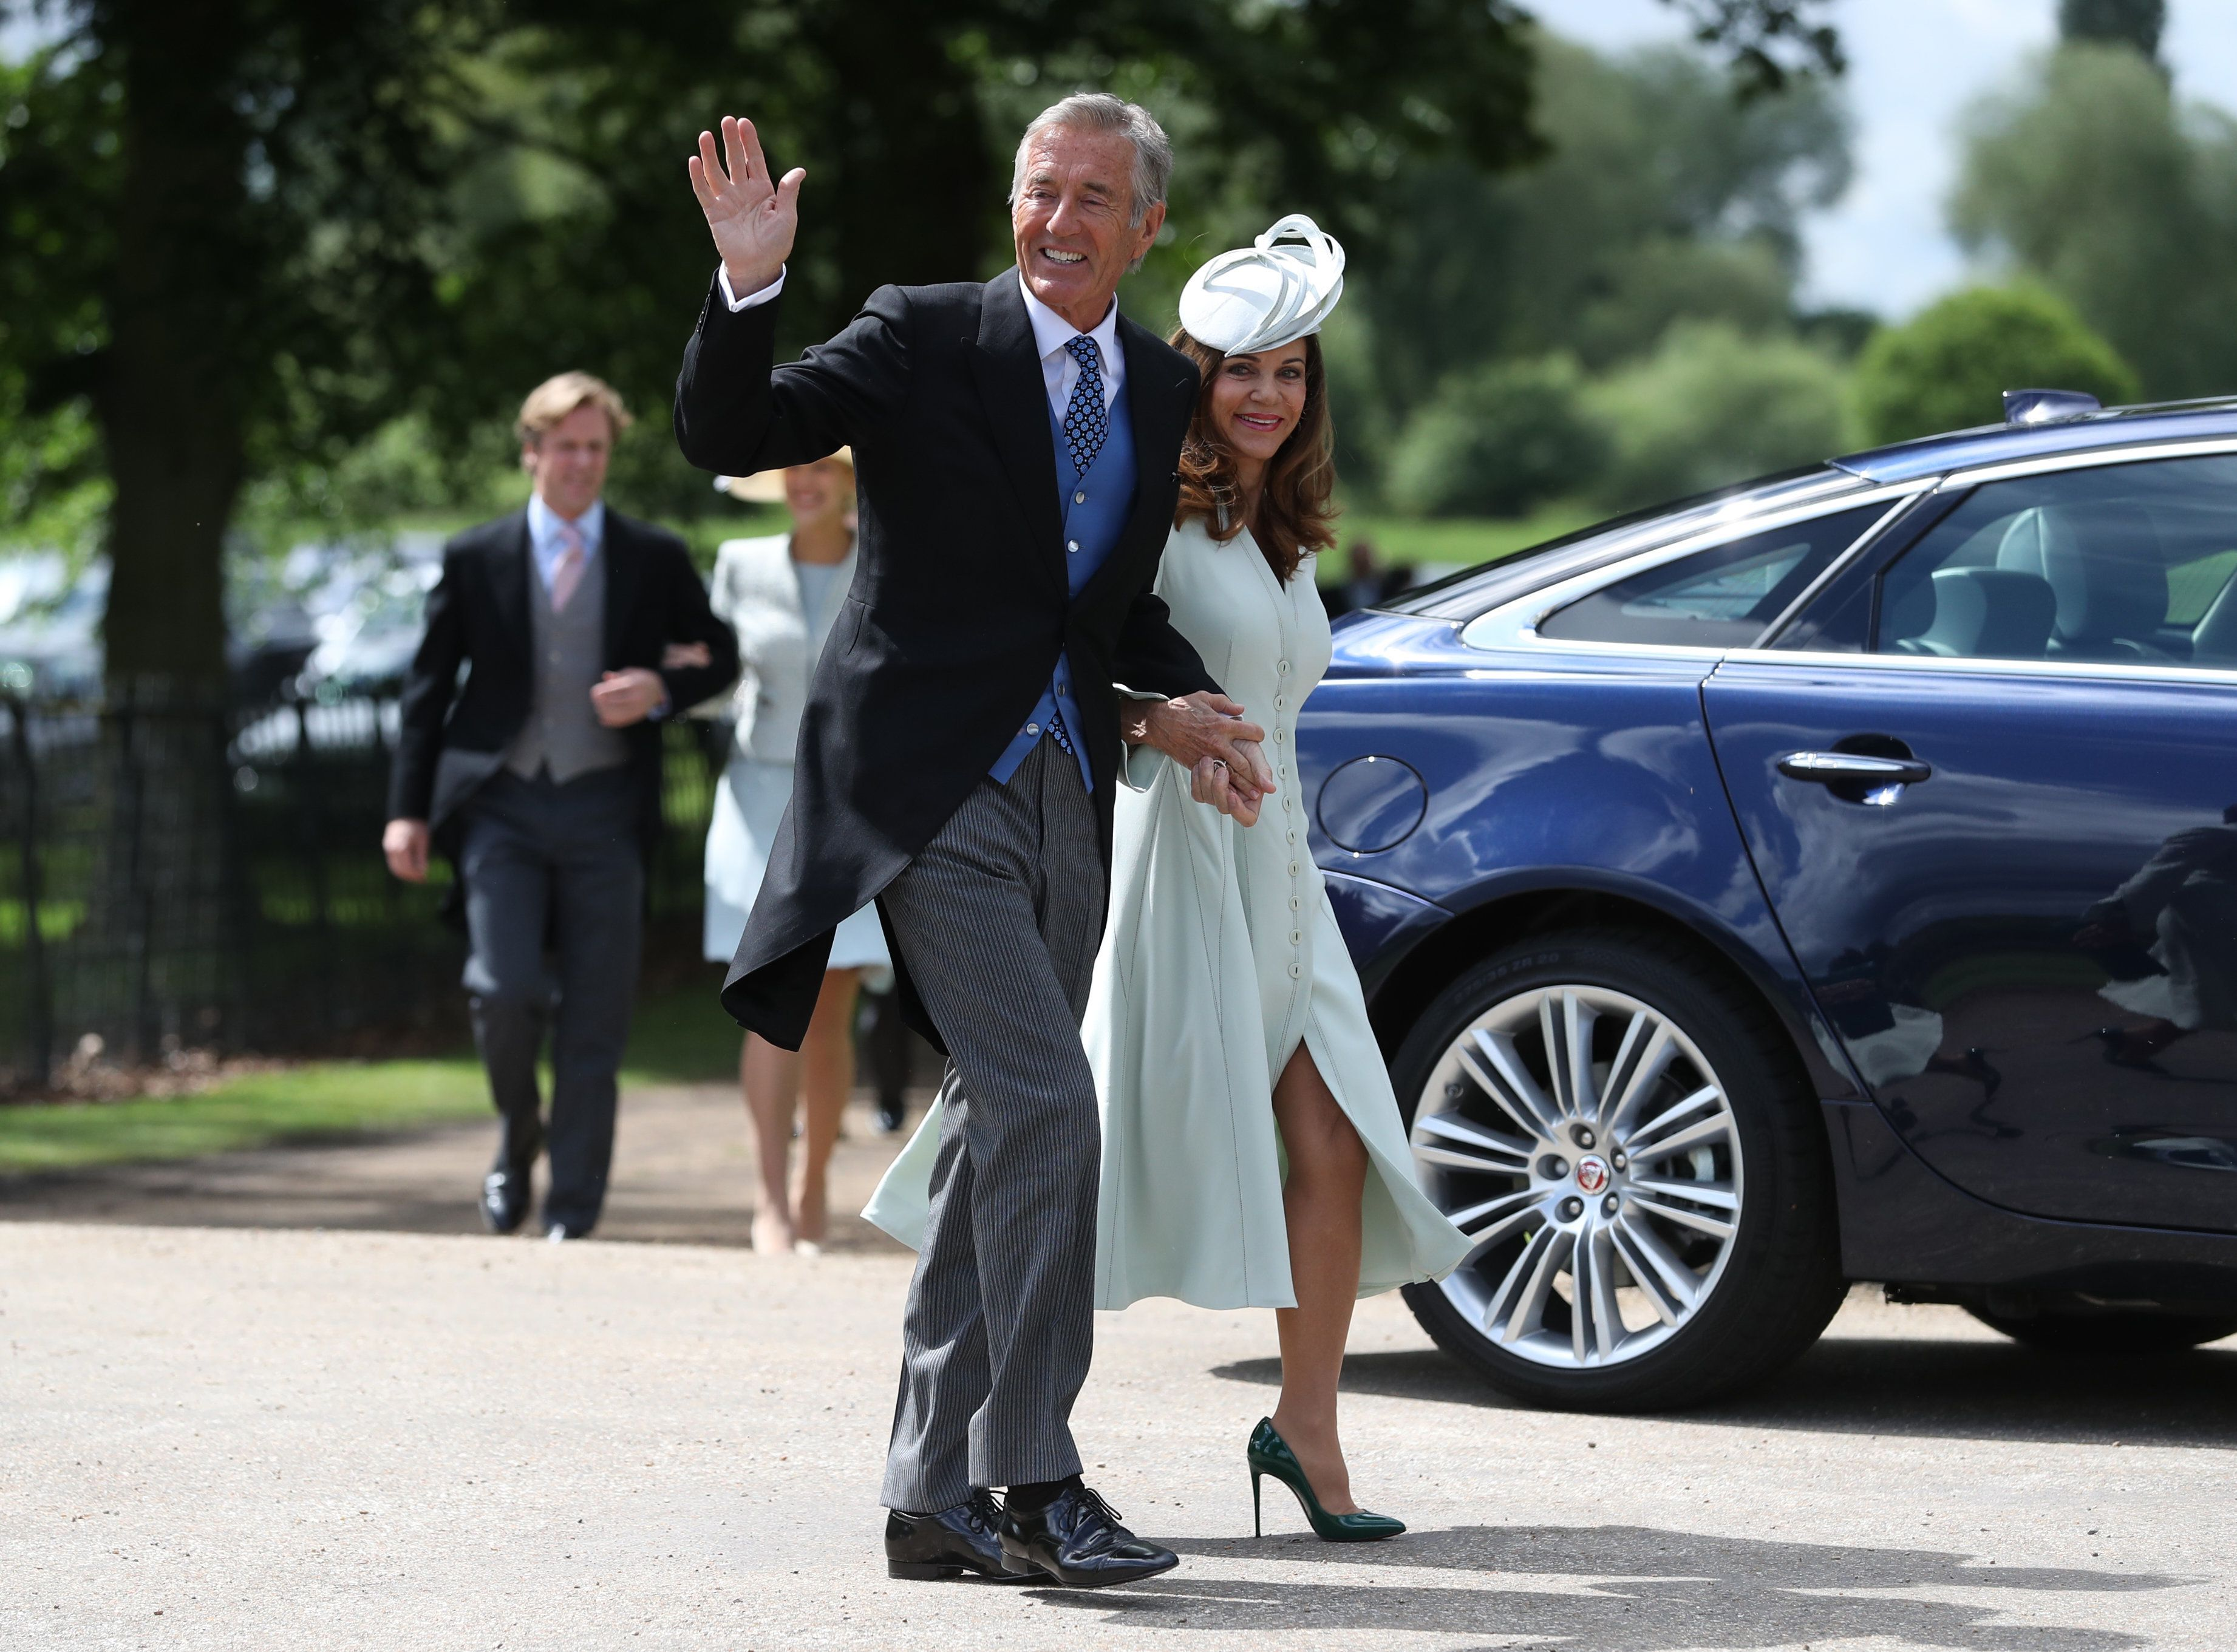 Pippa Middleton's Father-In-Law Investigated For Alleged Child Rape